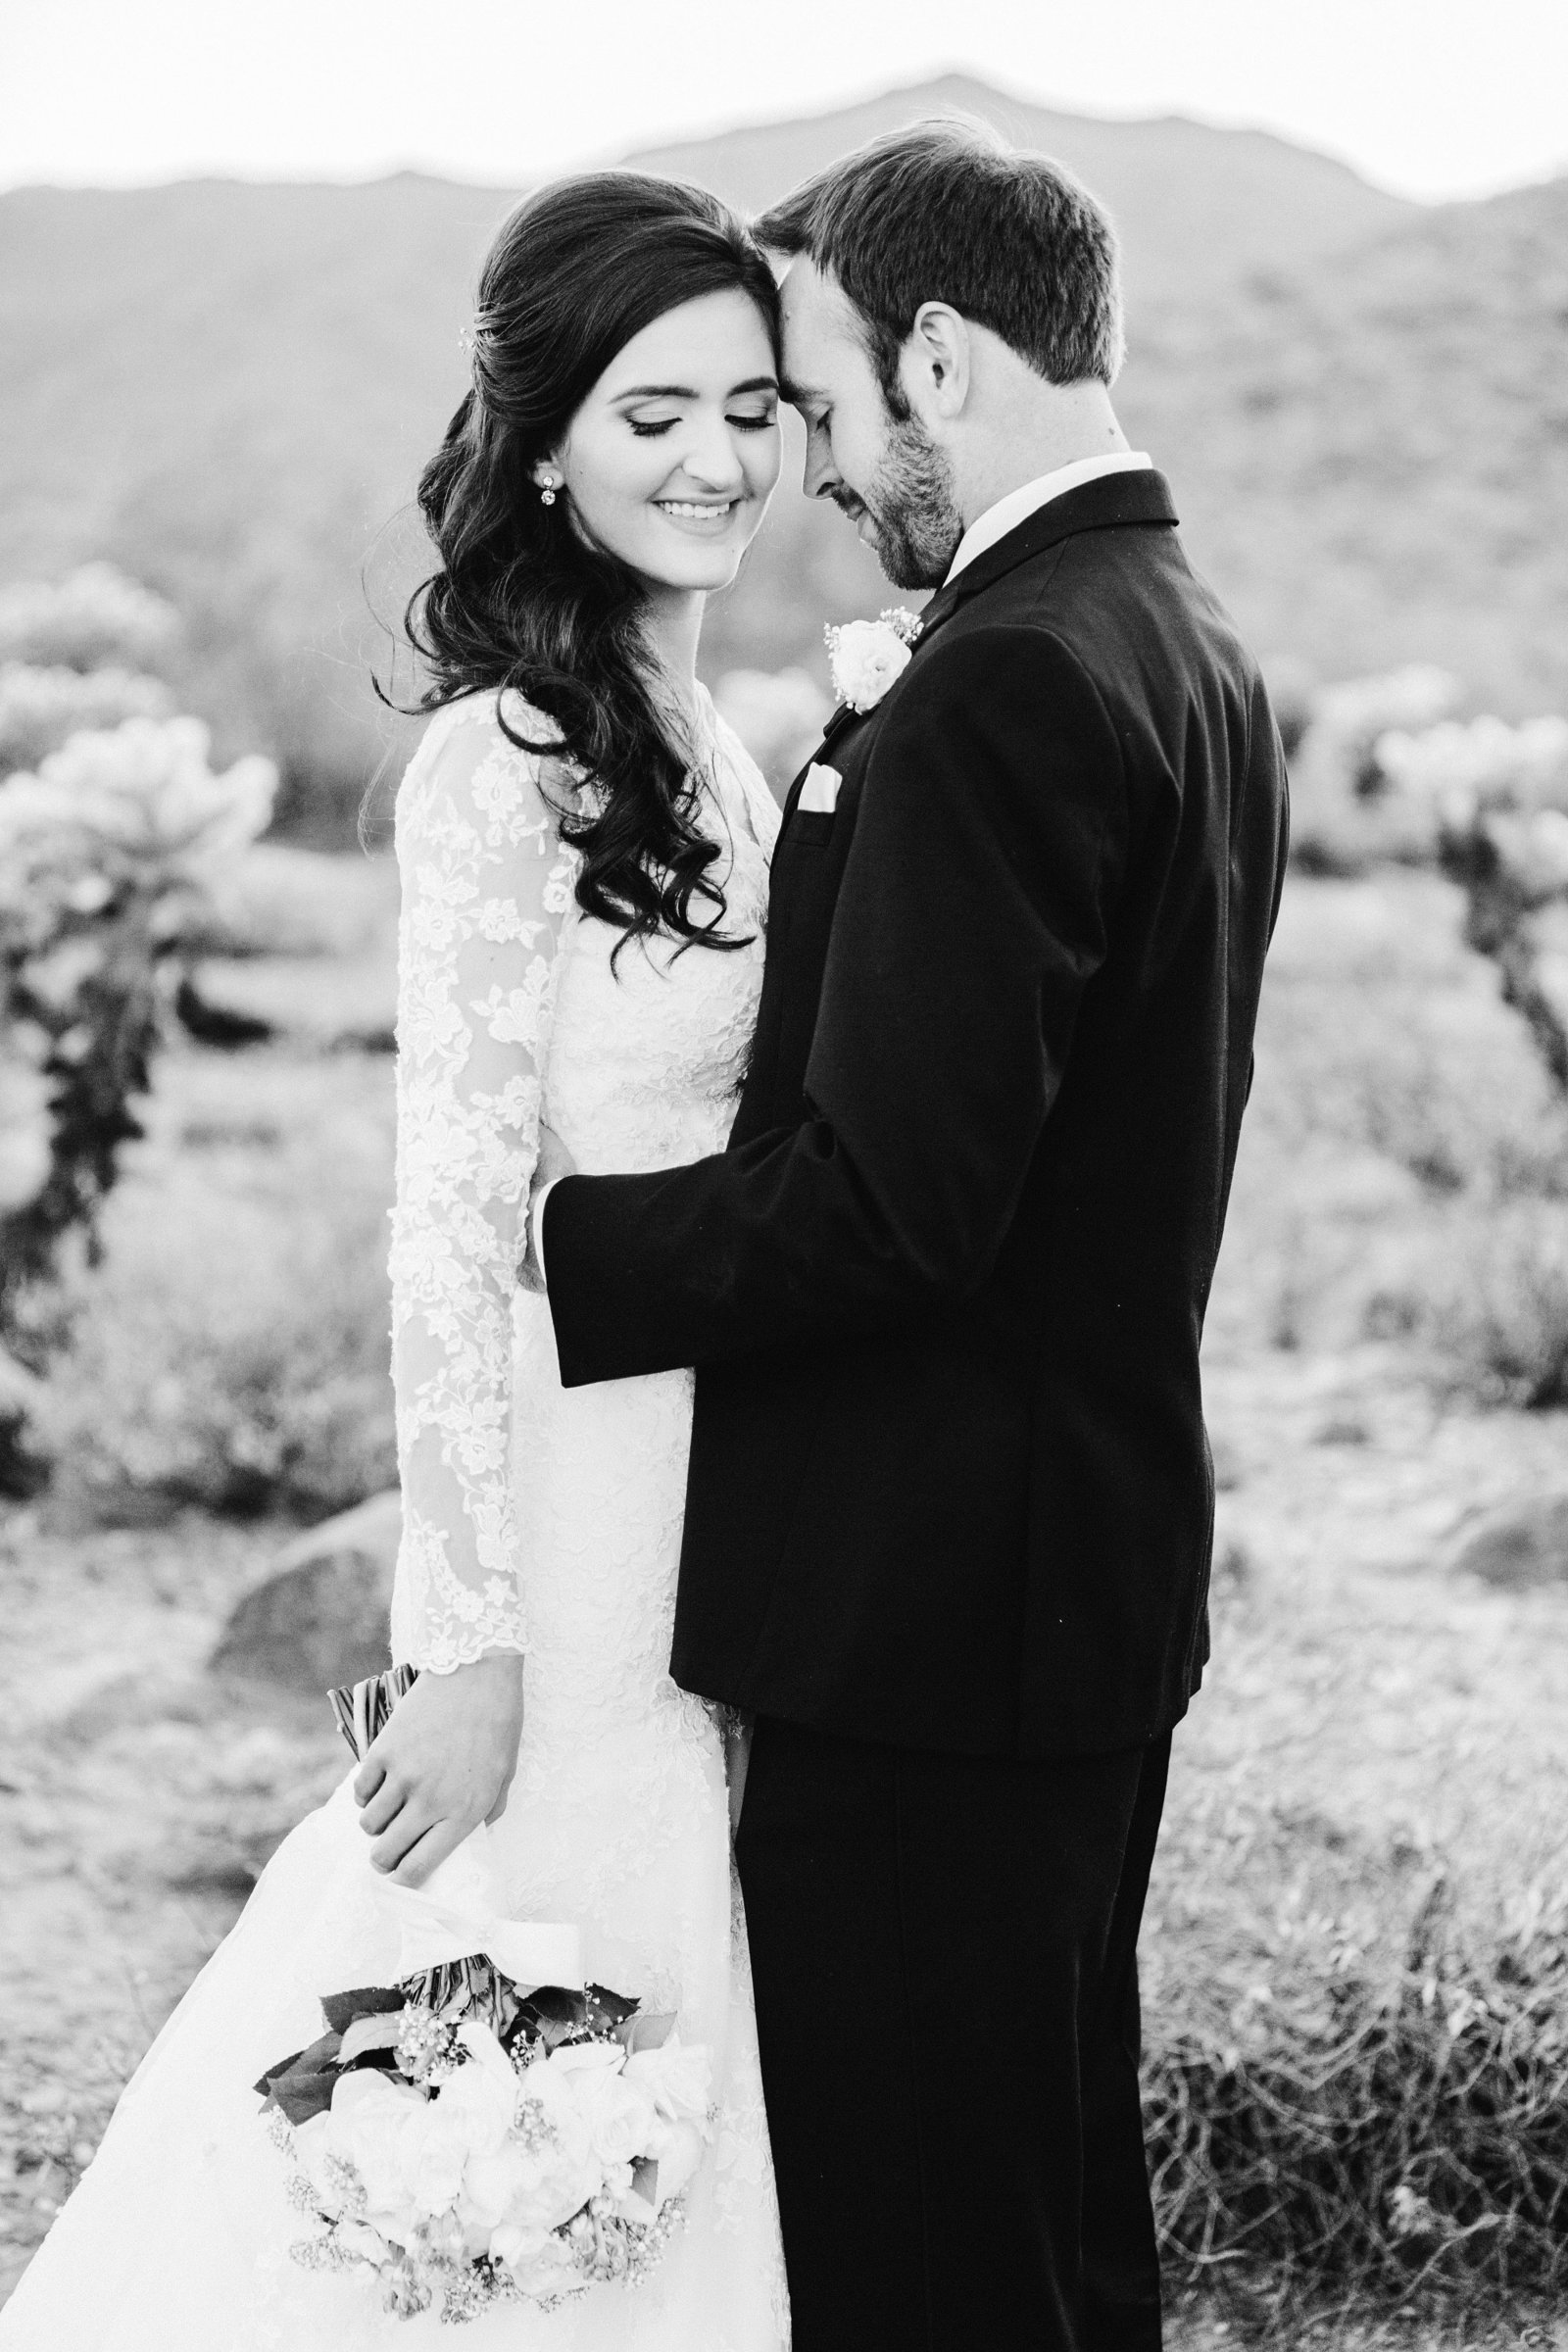 Bride + Groom Portraits Denver Colorado Springs CO Wedding Photographer Genevieve Hansen 037